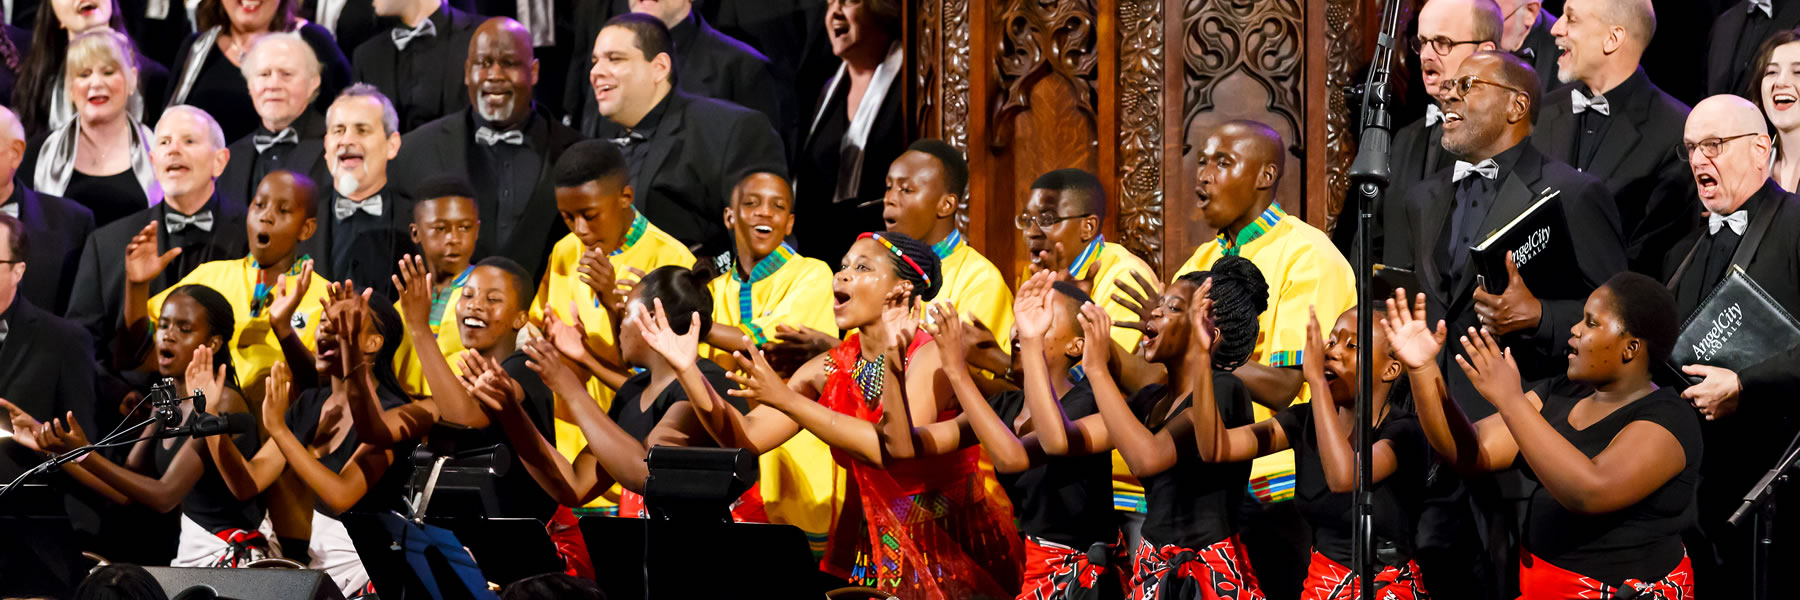 ACC singers in concert hosting a South African youth choir